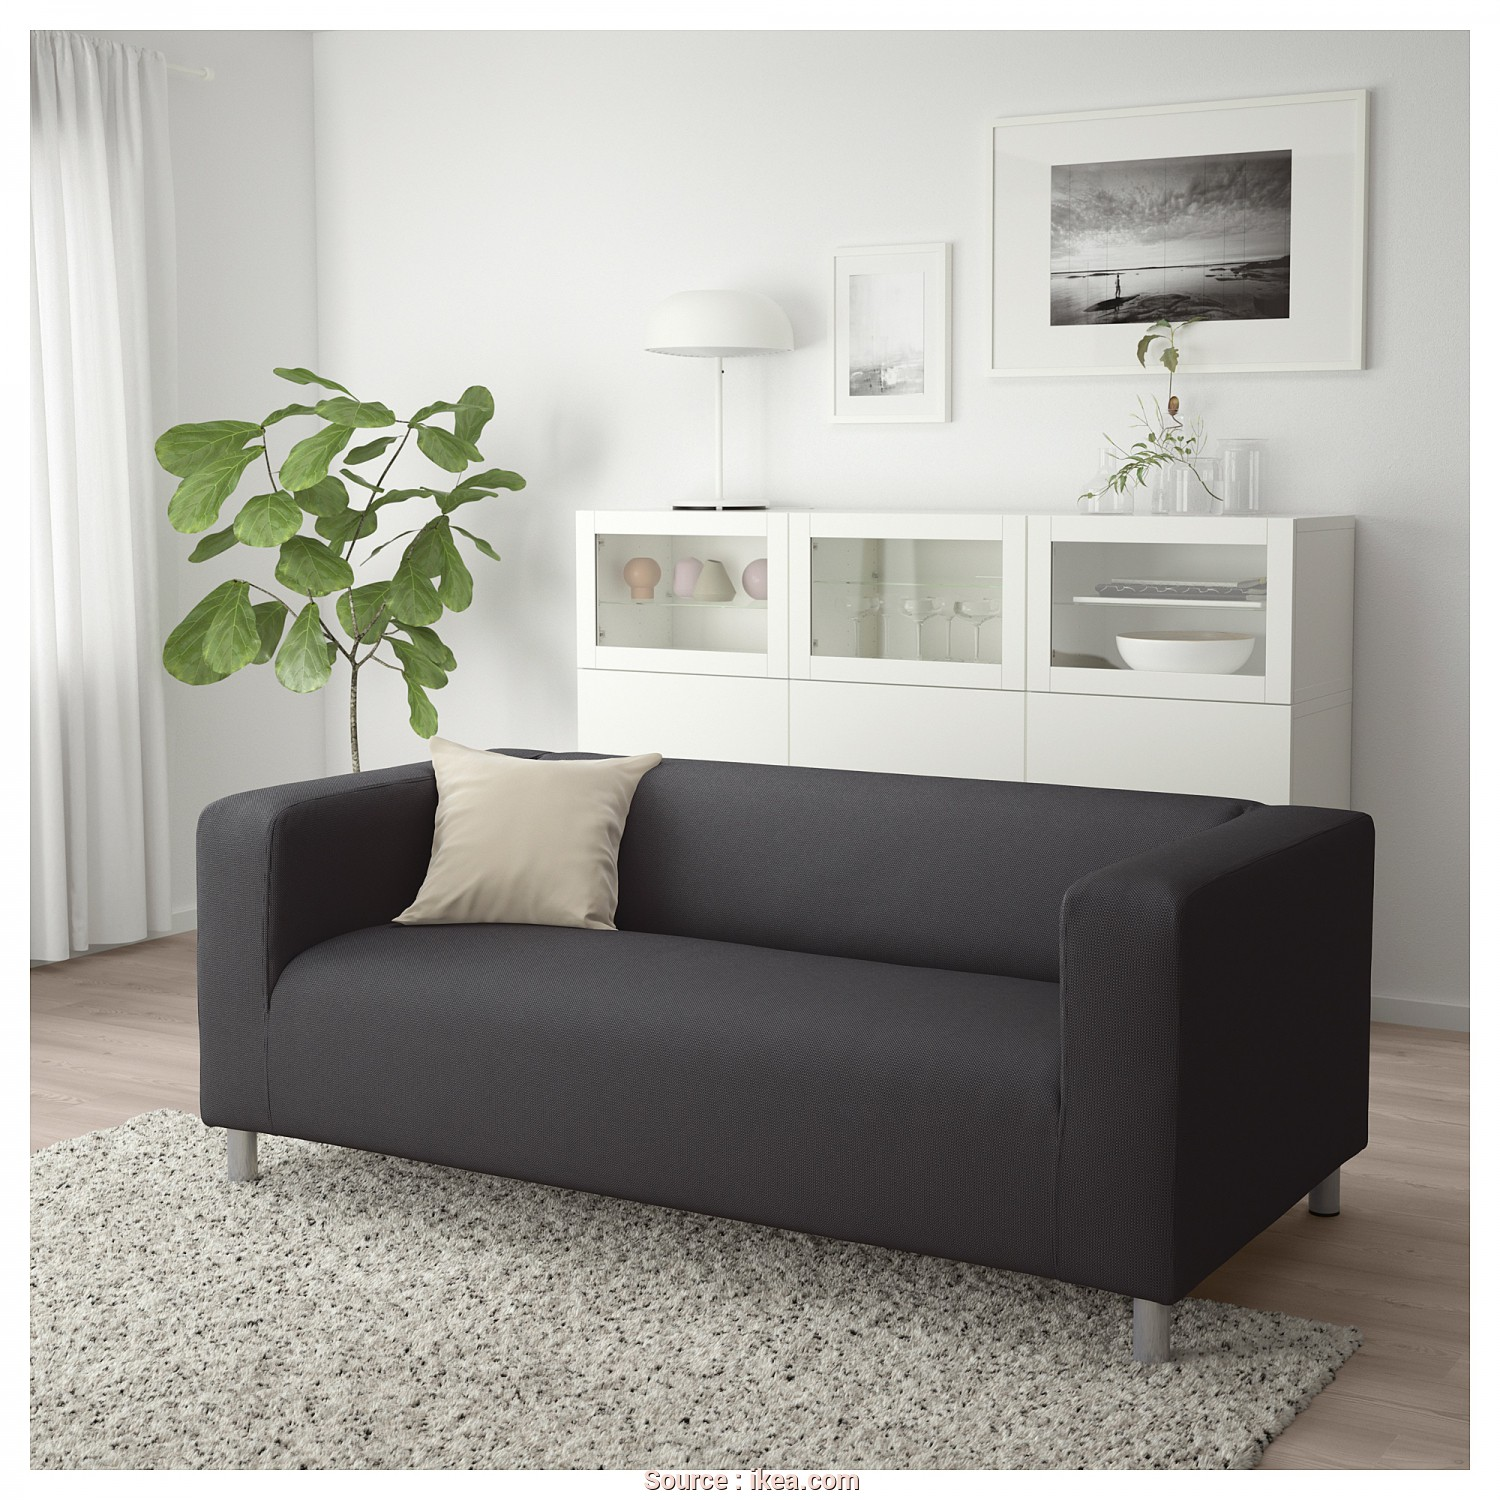 Ikea Klippan Sofa Youtube, Delizioso IKEA KLIPPAN 2-Seat Sofa, Cover Is Easy To Keep Clean Since It Is